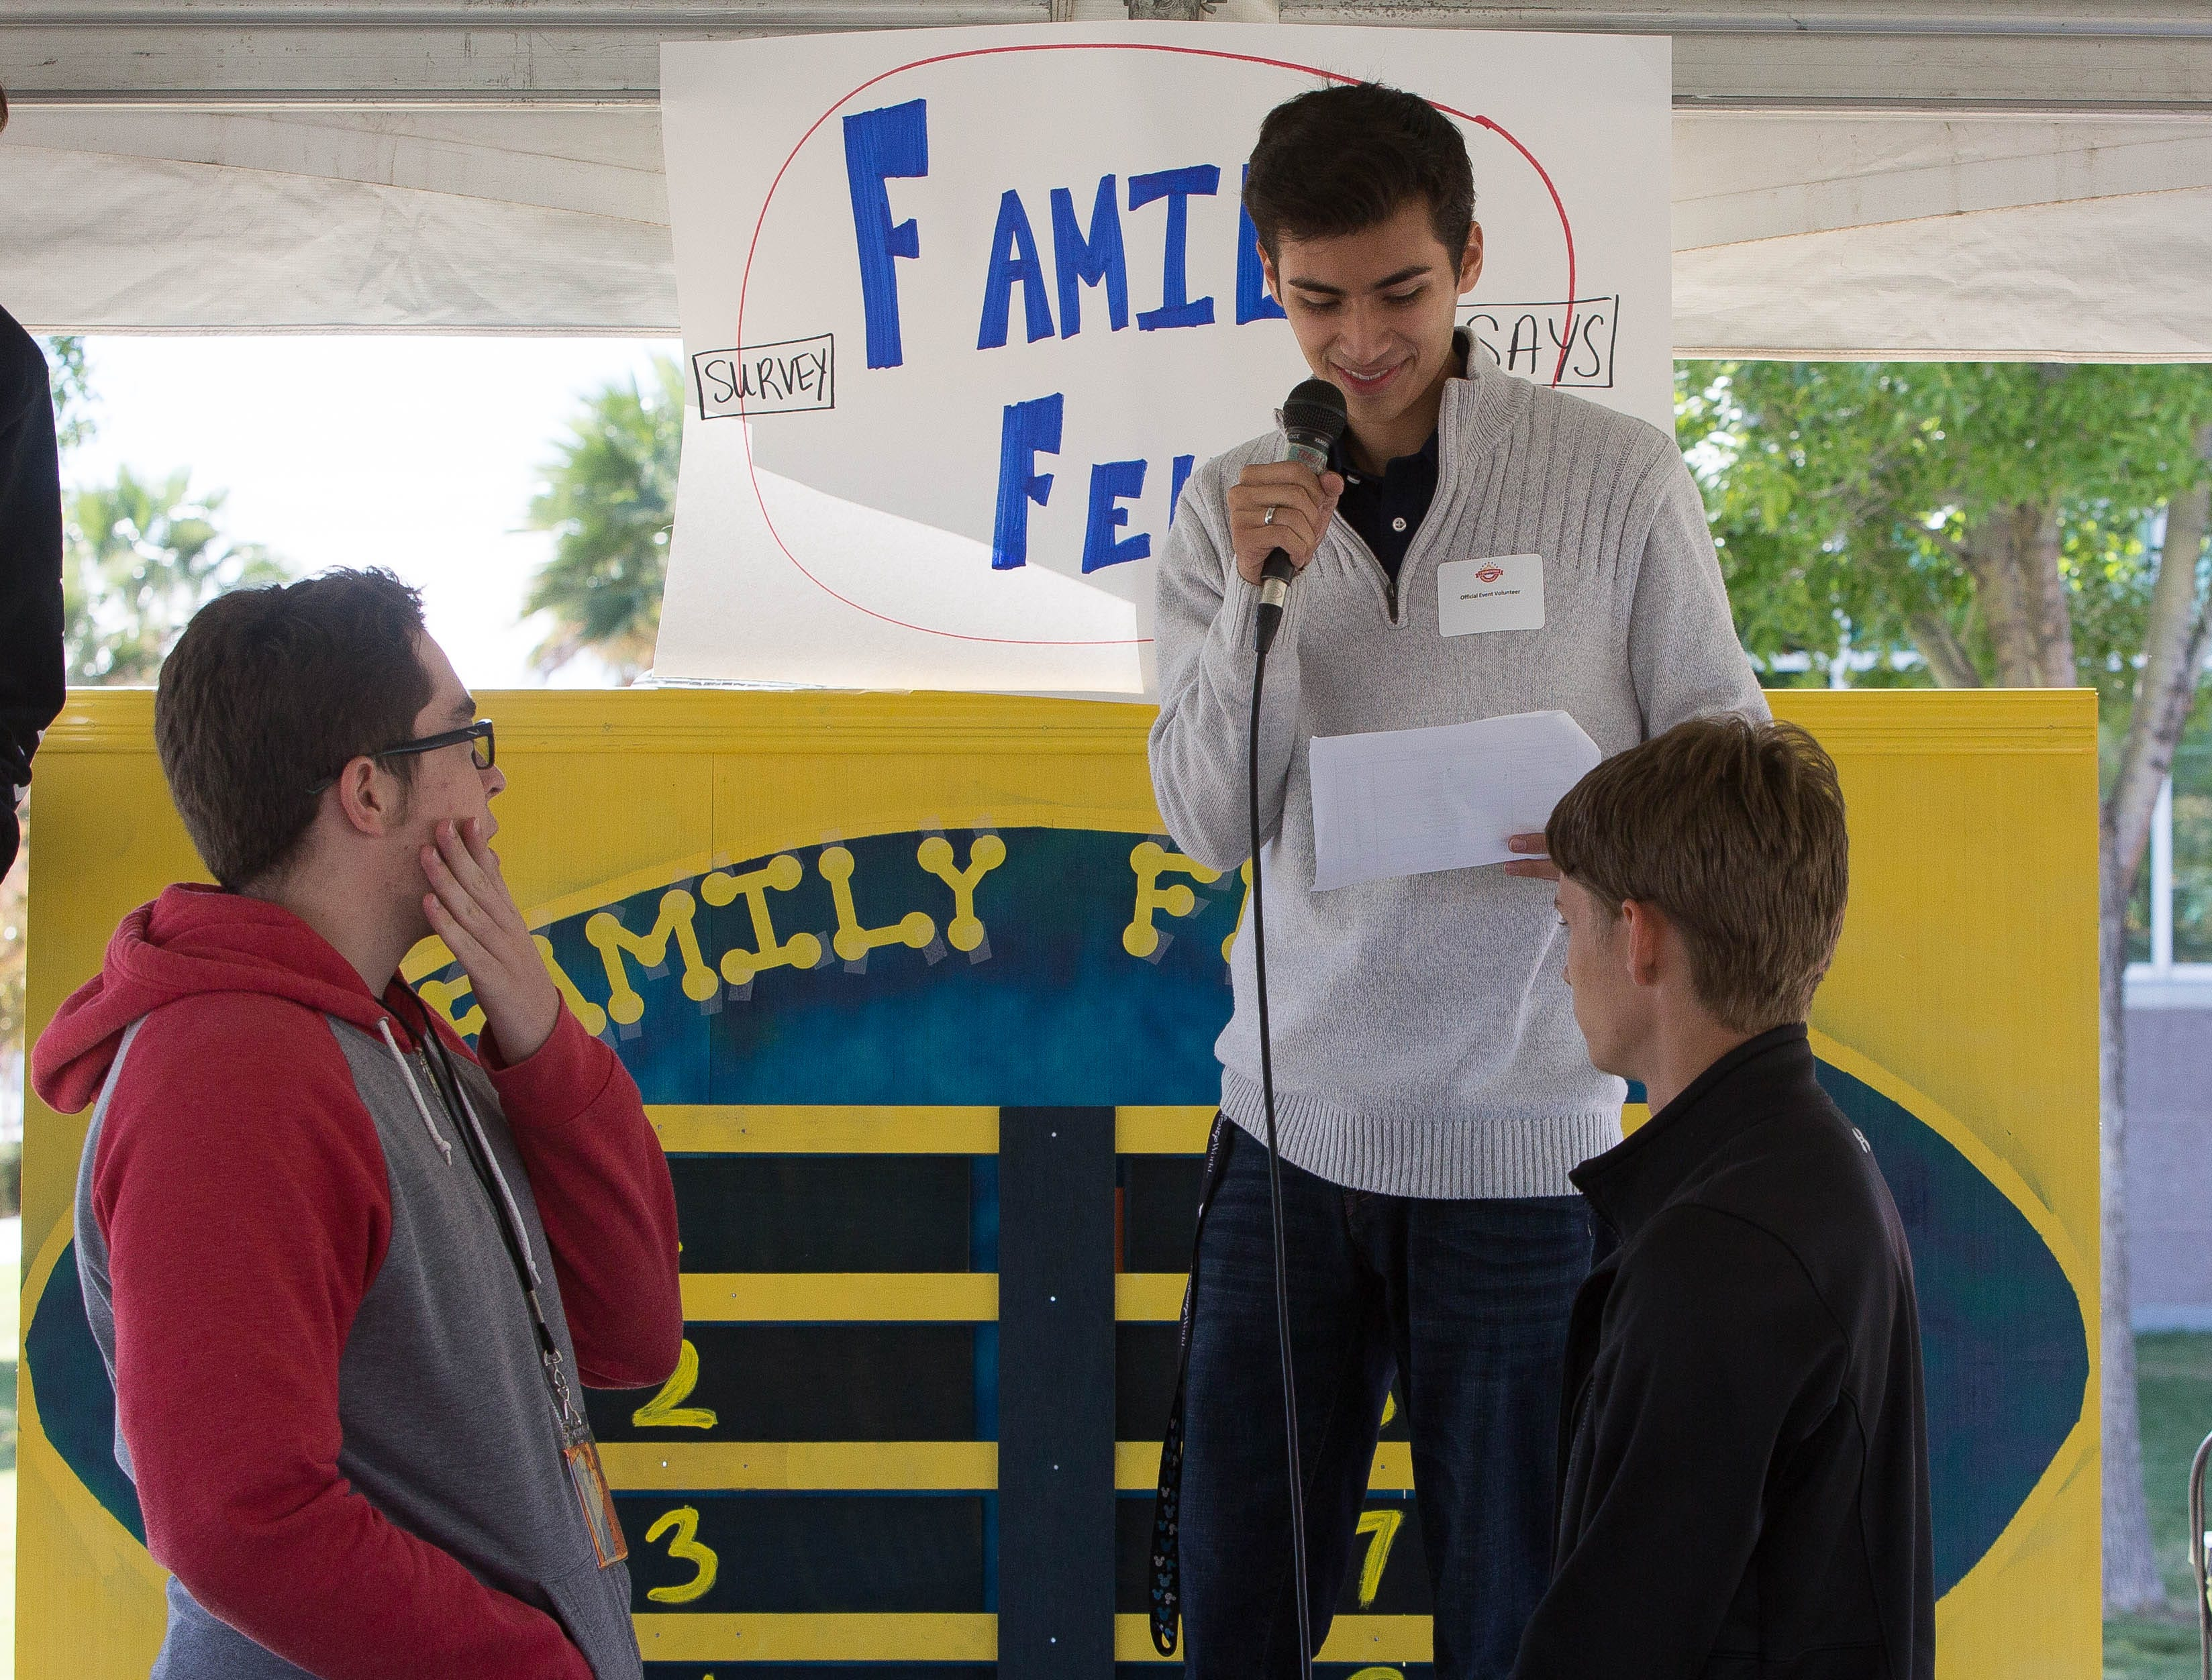 "Mathew Madrid, the Associated Students of New Mexico State University Assistant Director of Governmental Affairs, asks a question about the county's original colonies to ""Family Feud"" contestants Caleb Estep, 18, left, from Centennial High School, and Jay Choate, 17, from Oñate High School on Tuesday Oct. 9, 2018. About 300 seniors from area high schools came to a Celebrating Democracy event at the Doña Ana County Government Center."